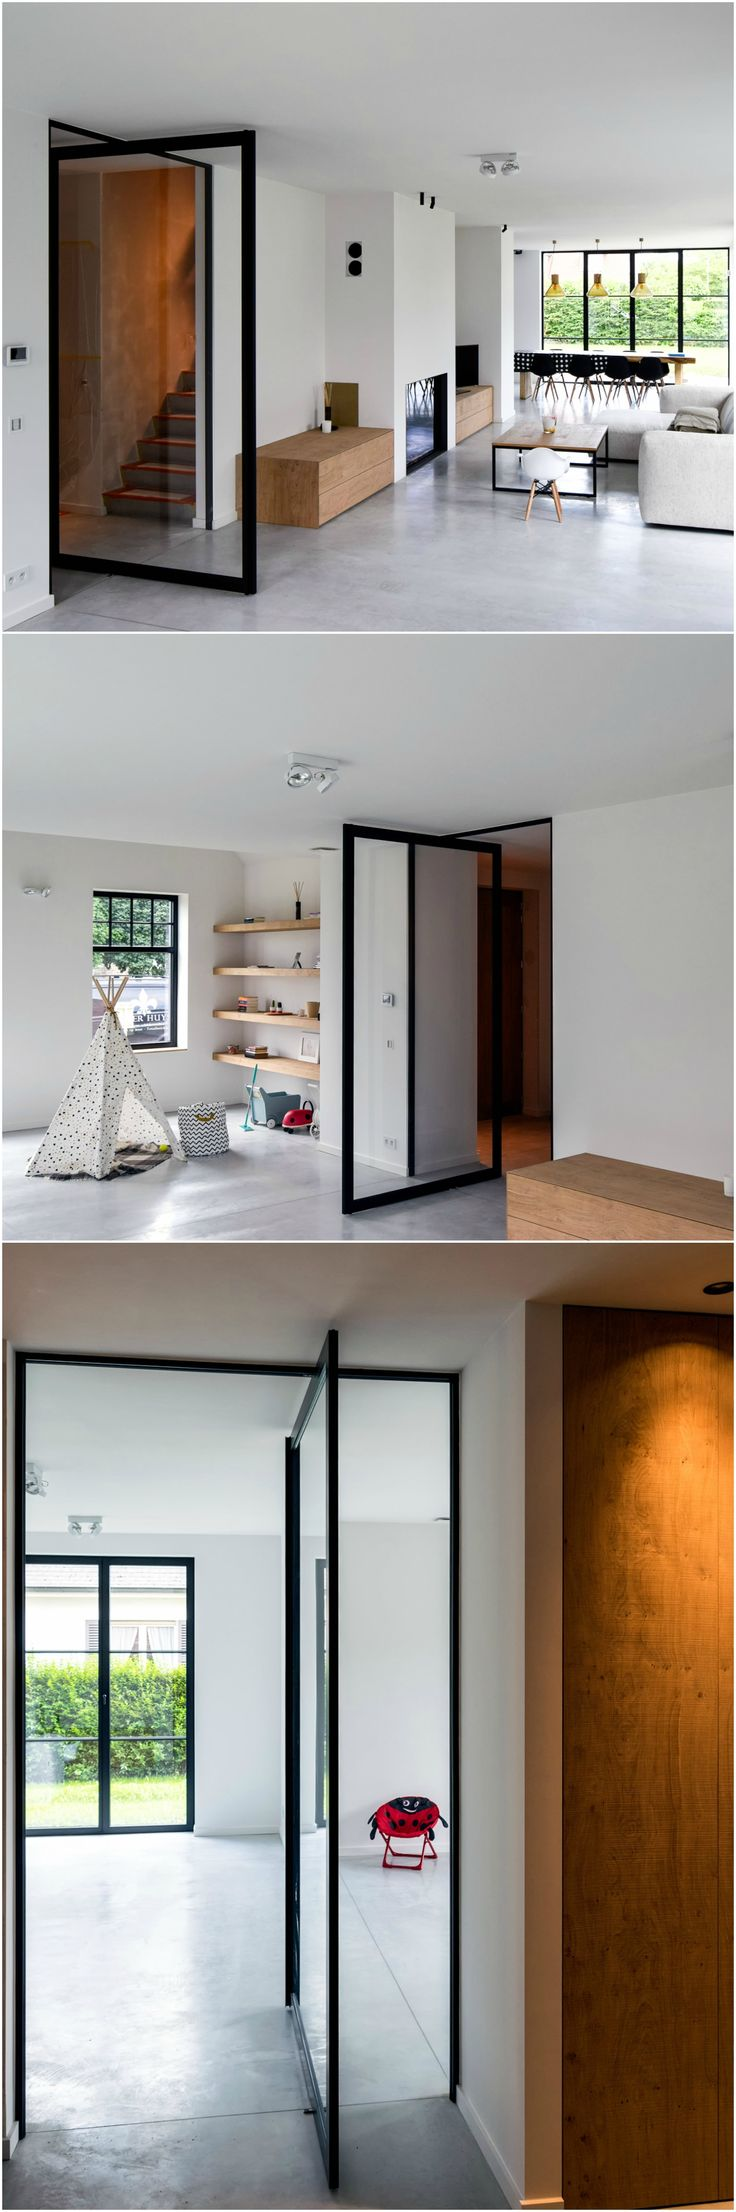 """Glass pivot door """"steel look"""" design in a modern interior with Scandinavian design influences.  The pivot door is made from black anodized aluminium and transparent glass. The pivoting hinge is integrated in the black frame, without any built-in parts in either floor or ceiling. #pivotdoor #anywaydoors"""